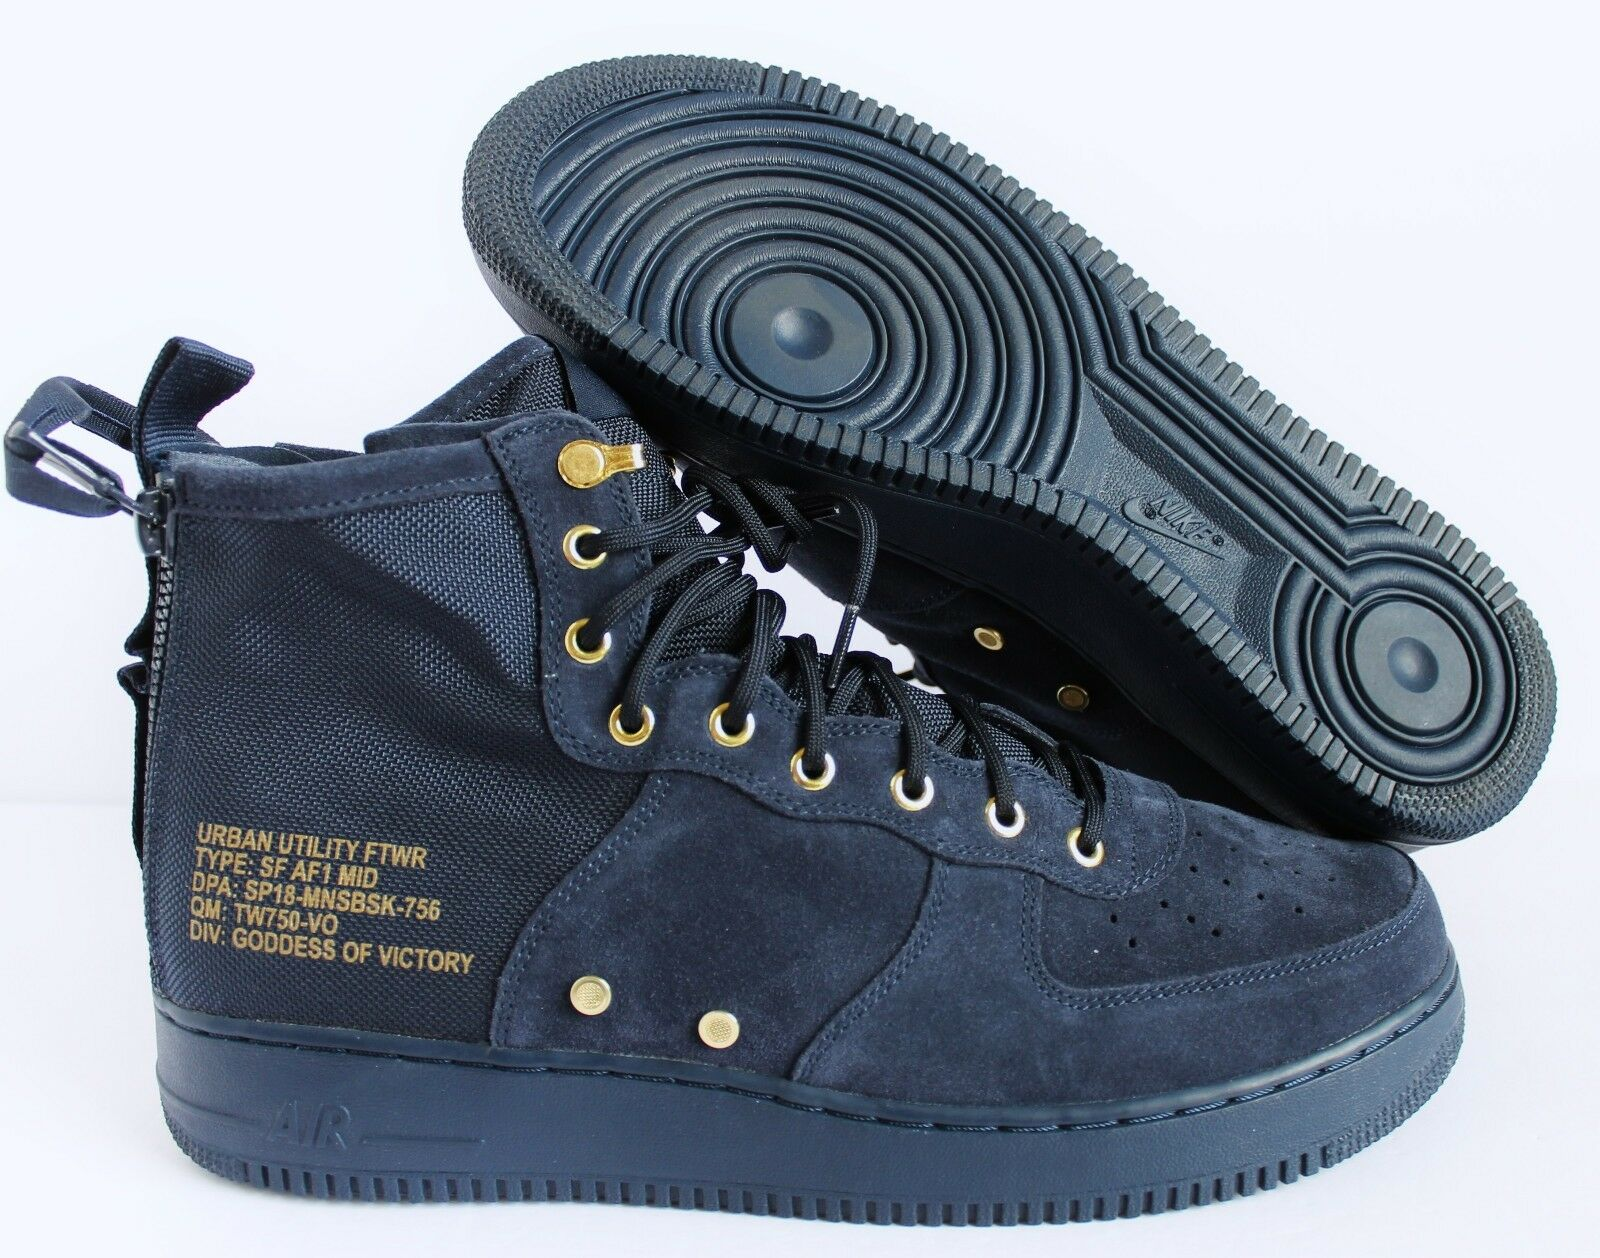 Nike SF AF1 Mid Special Field Air Force1 Obsidian-Black SZ 14 [917753-400]